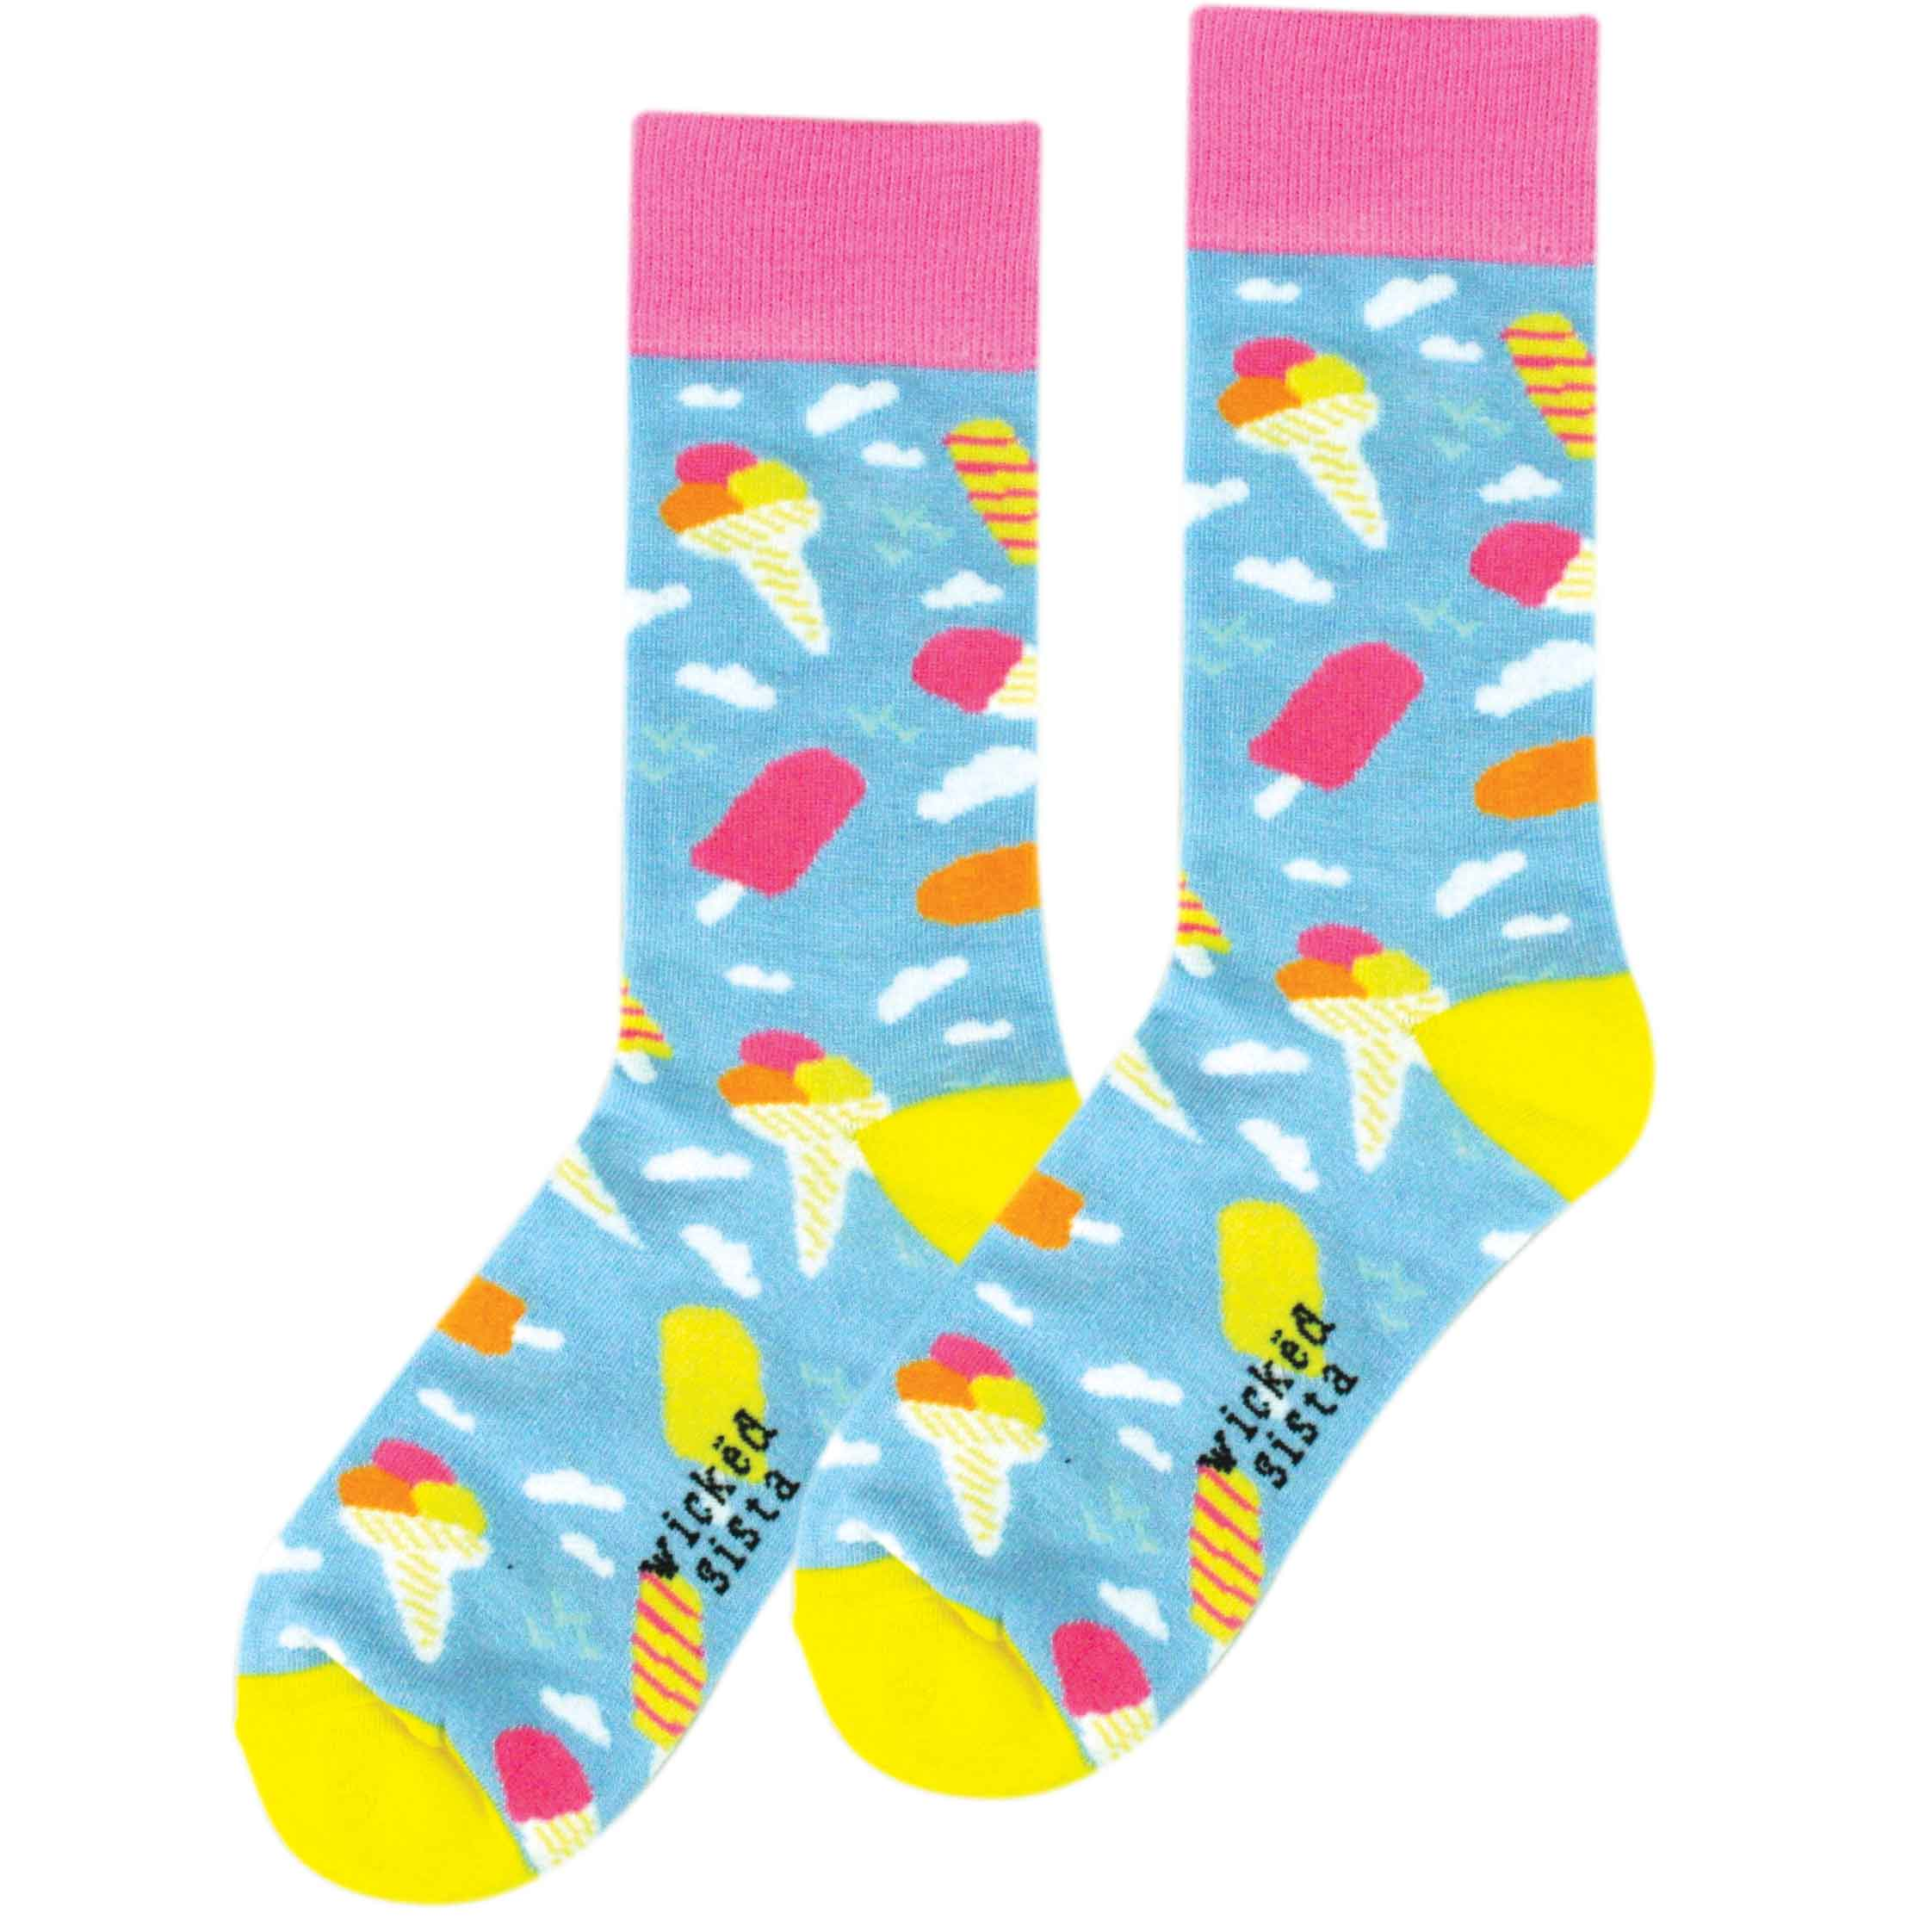 Ice cream fun socks